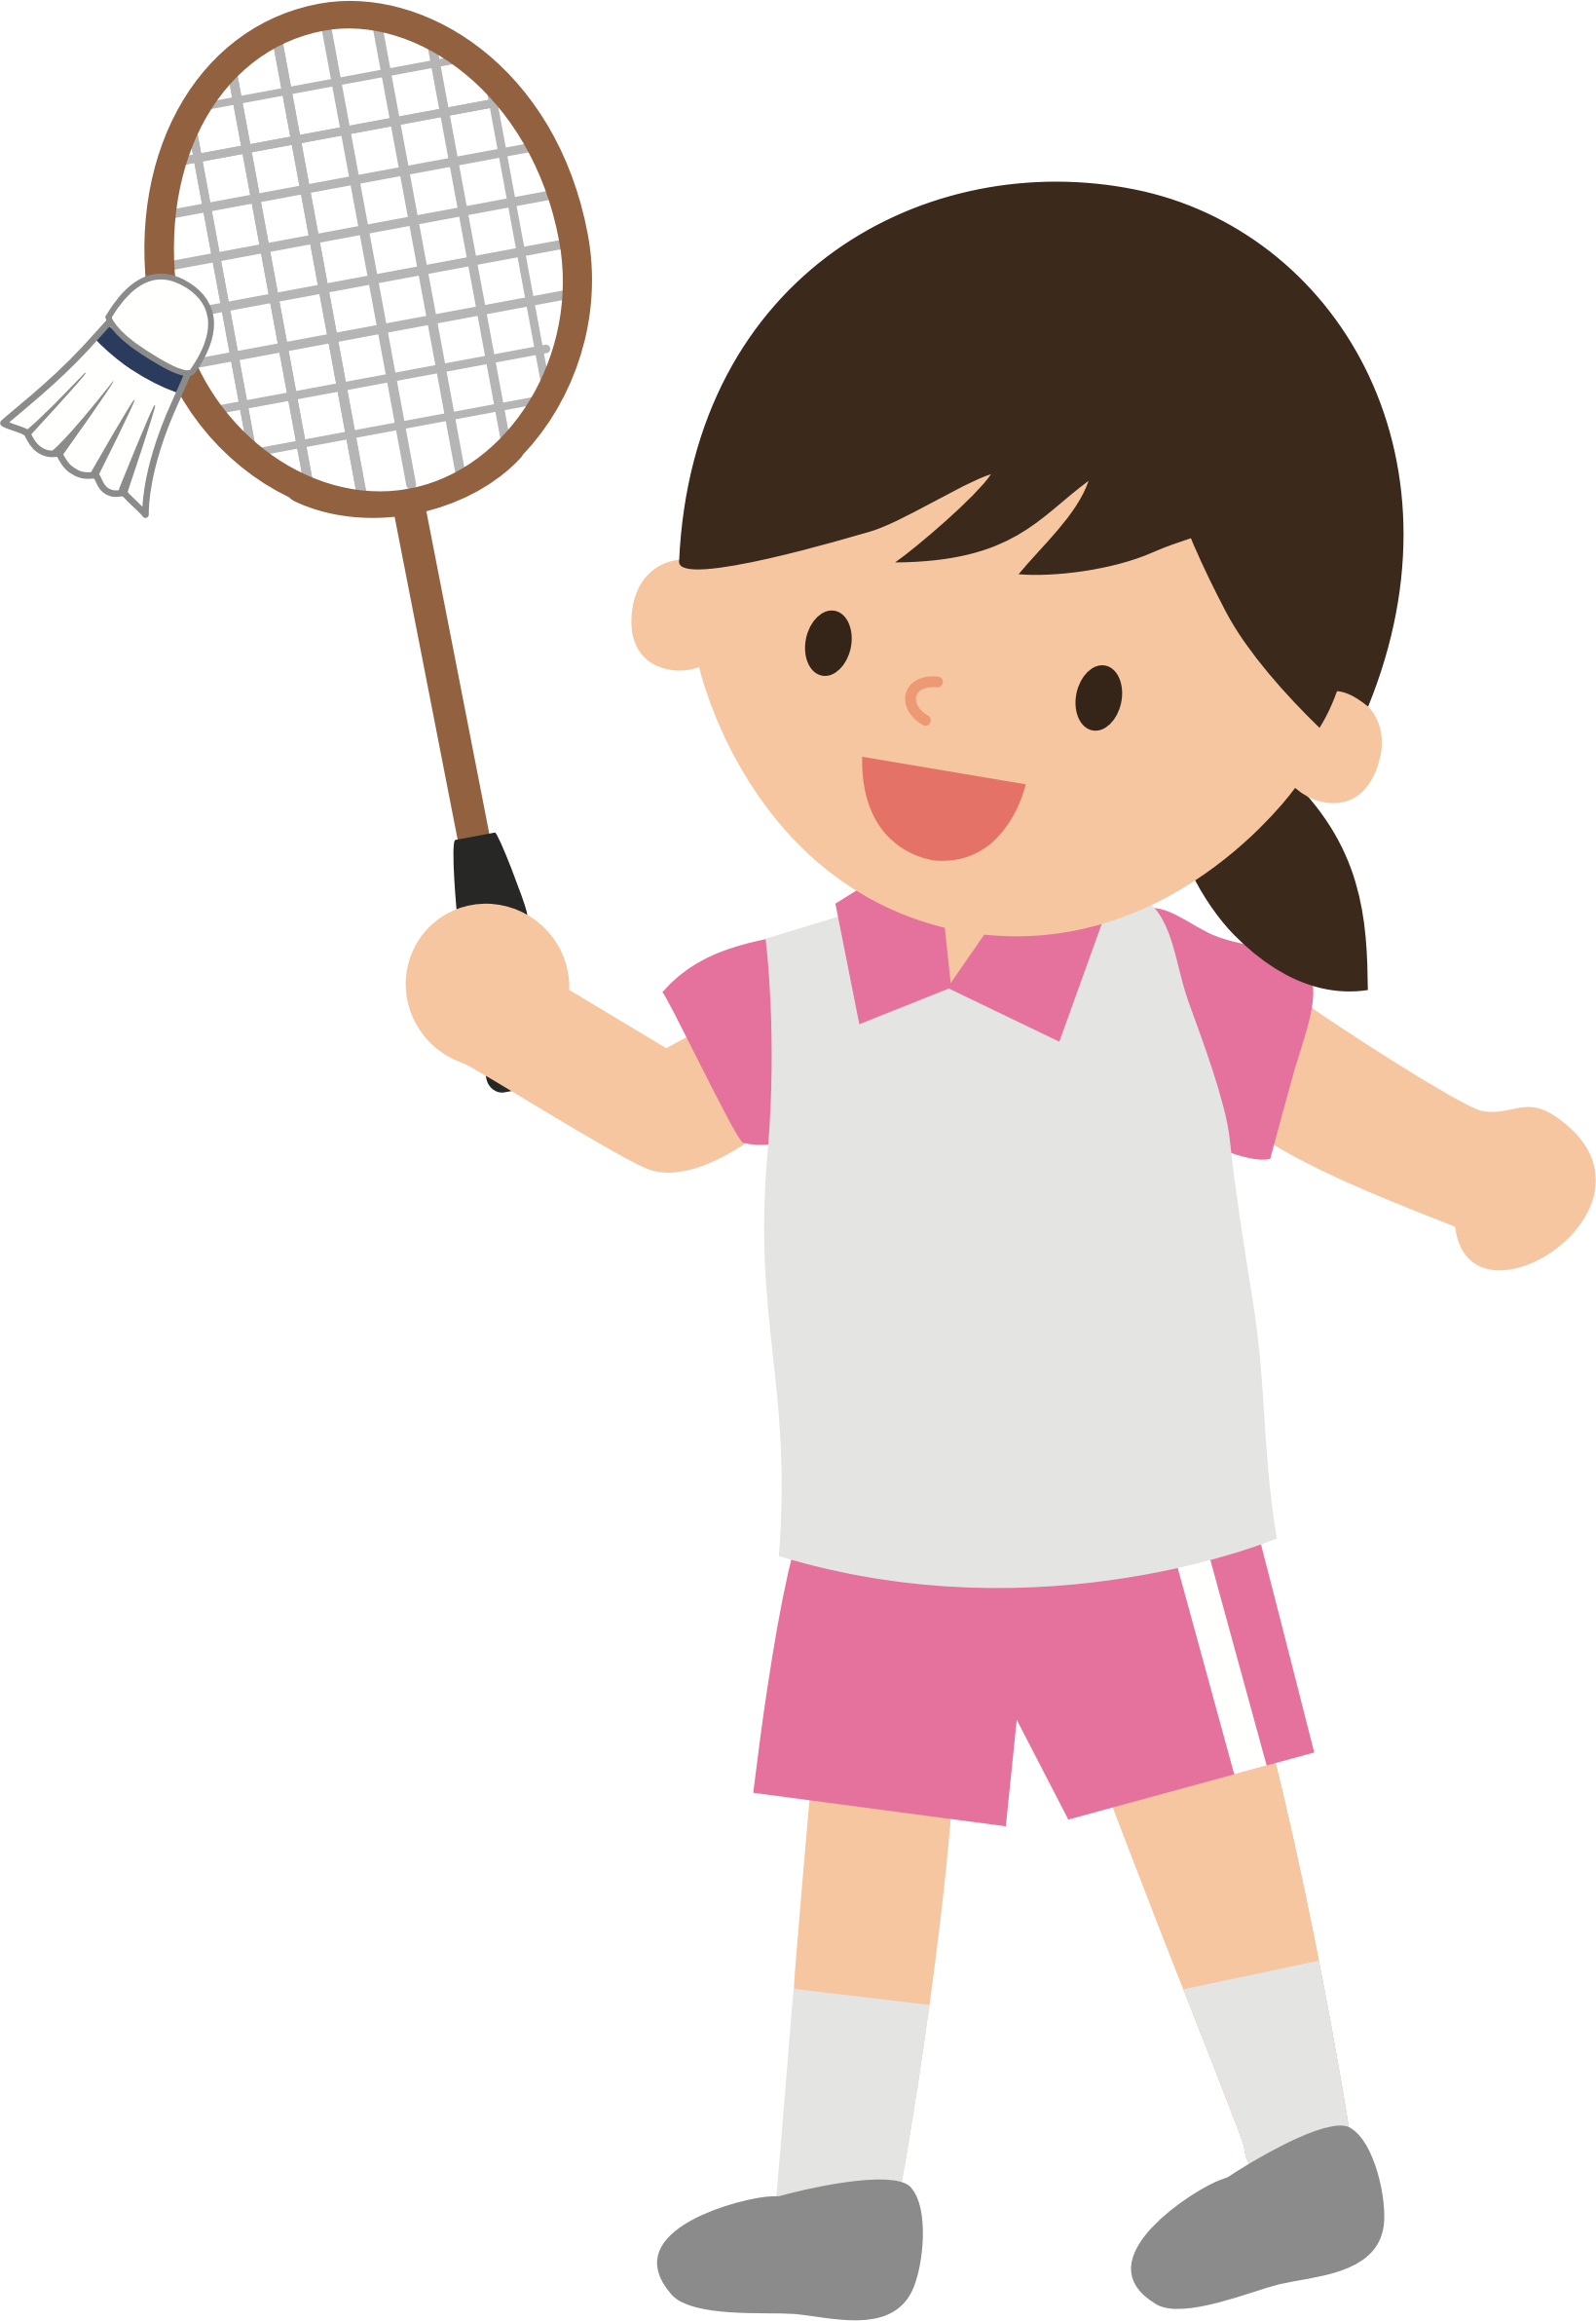 Big image png. Badminton clipart picture royalty free download